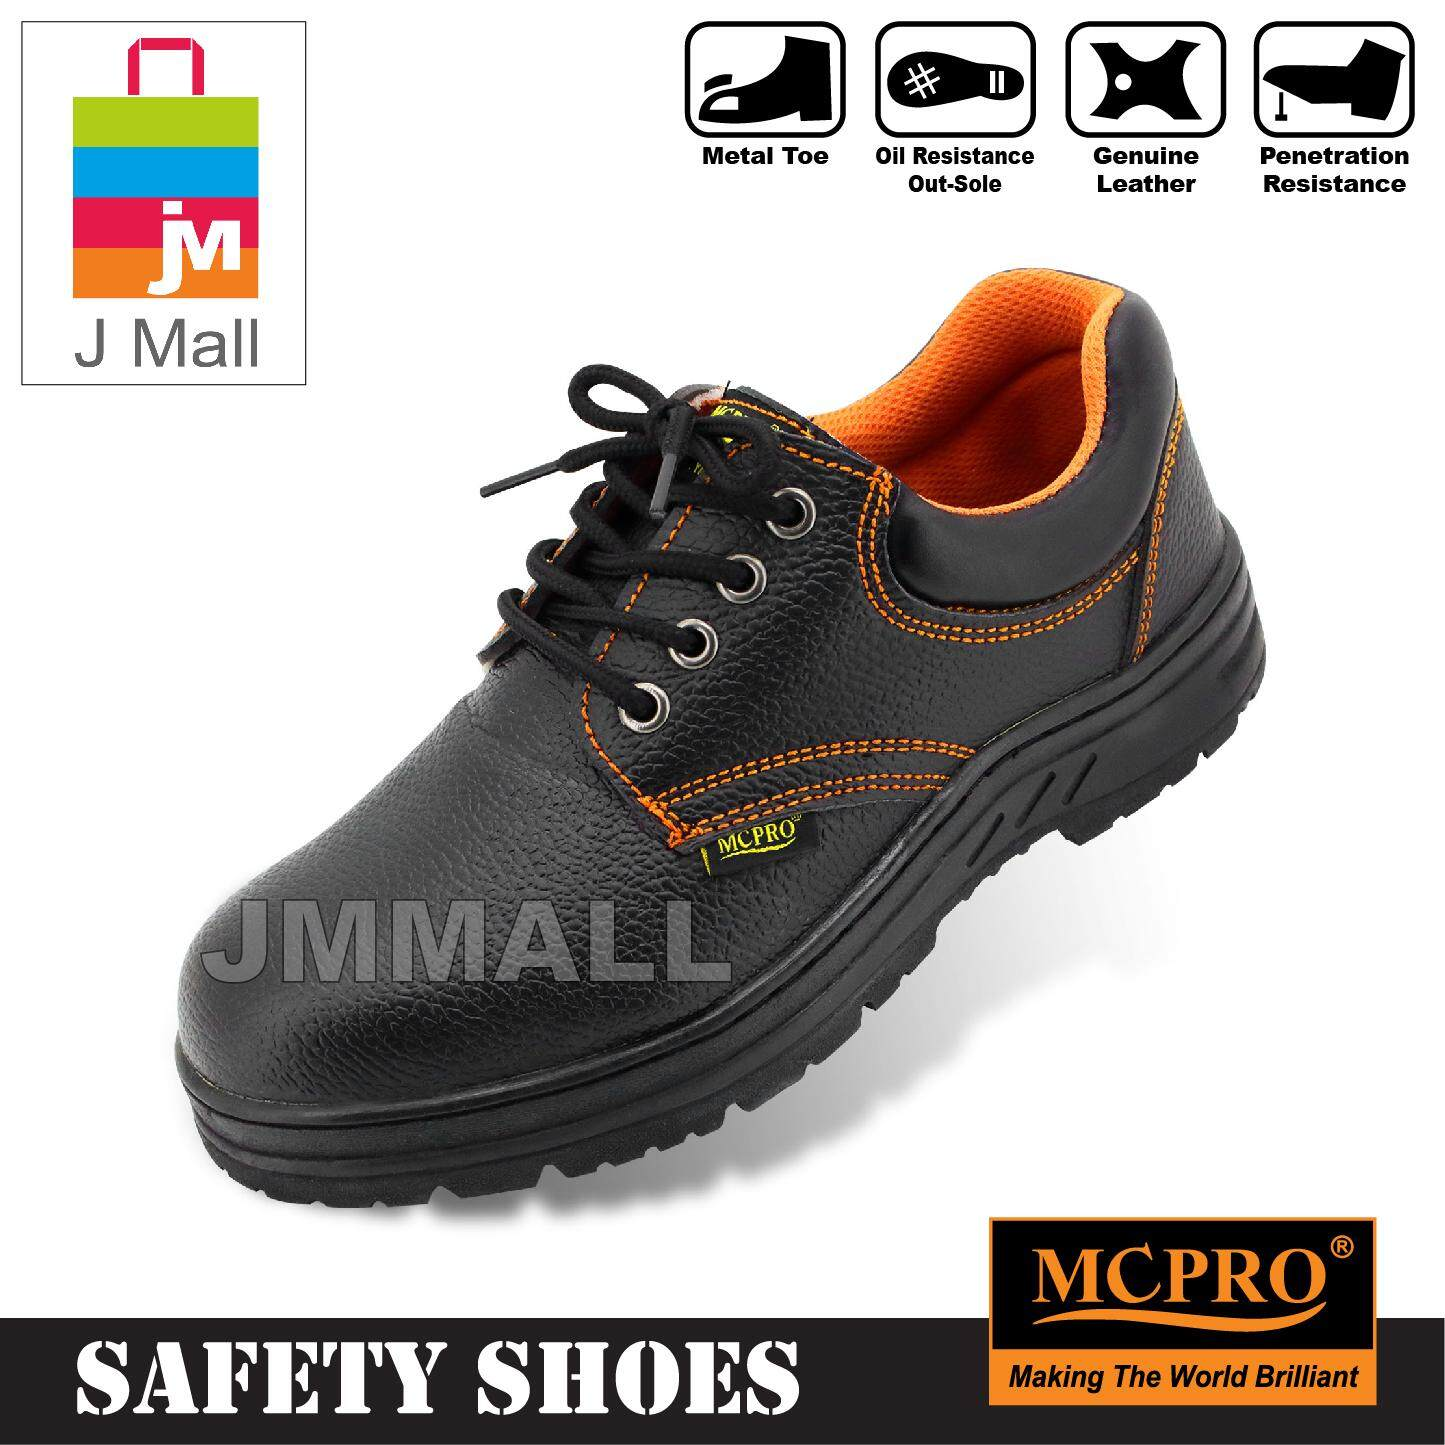 Mcpro Safety Shoes Steel Toe Cap Mid Sole Low Cut Jj200 - Black By J Mall.